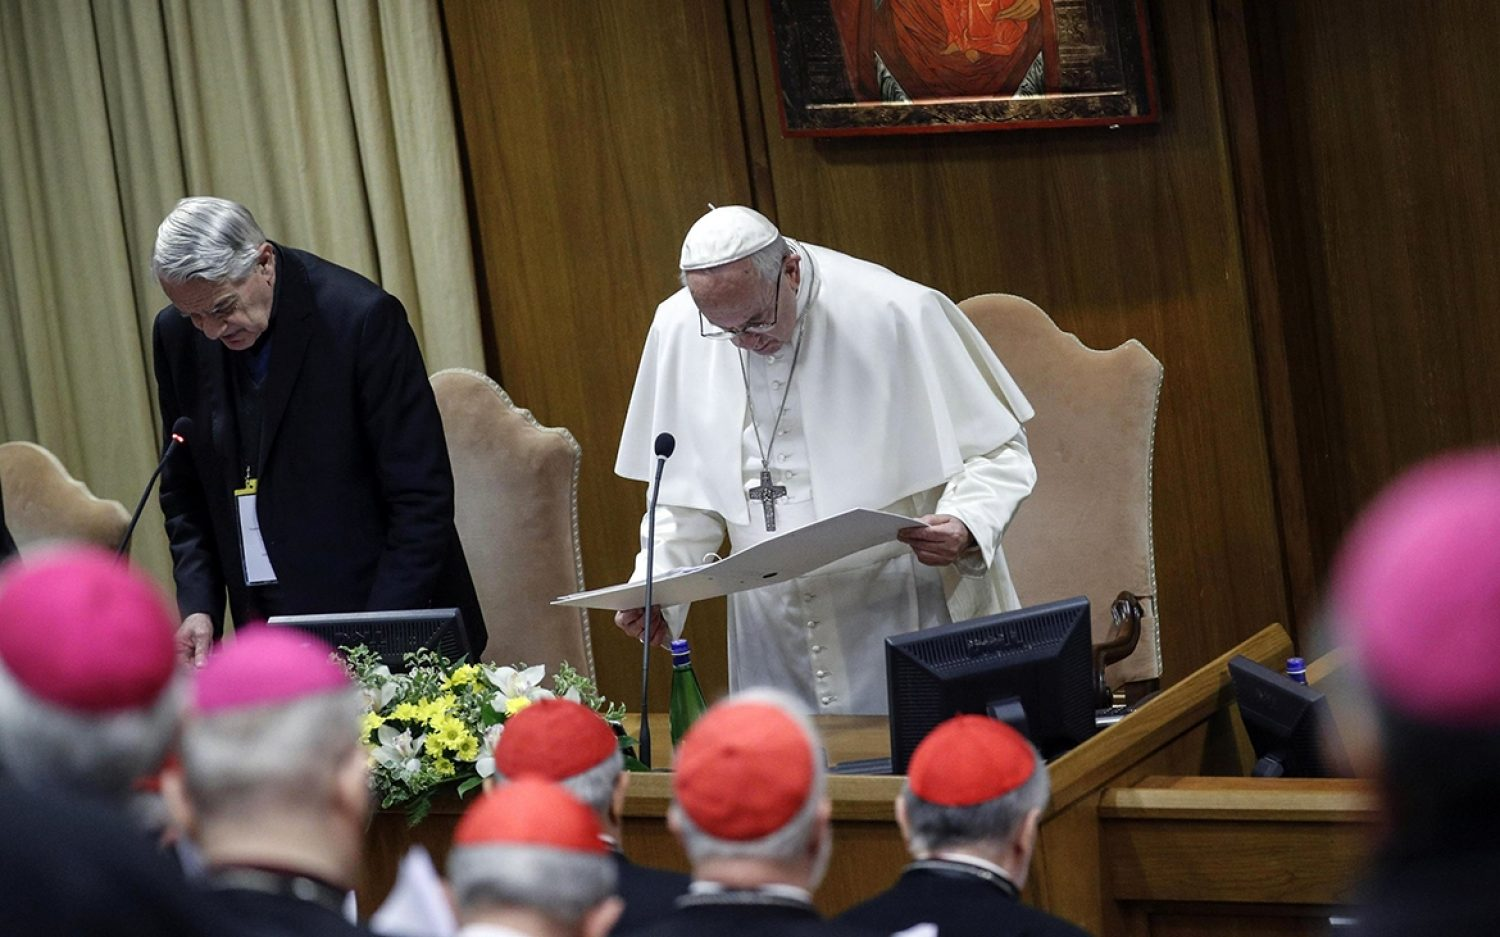 Vatican summit brings little hope for change